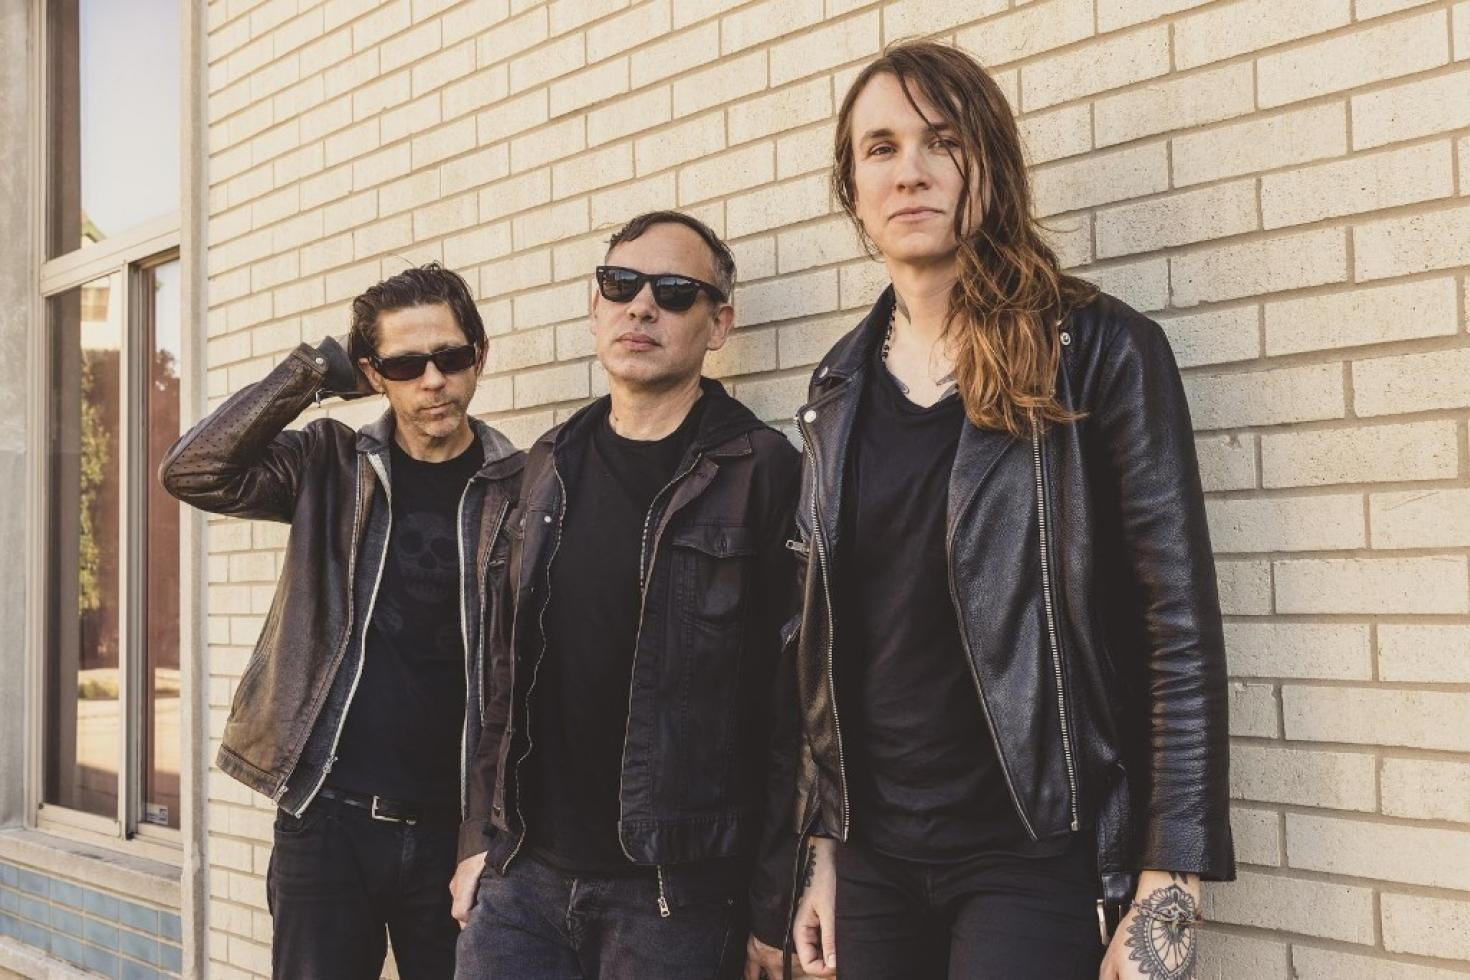 Laura Jane Grace & The Devouring Mothers stream new track 'Reality Bites'